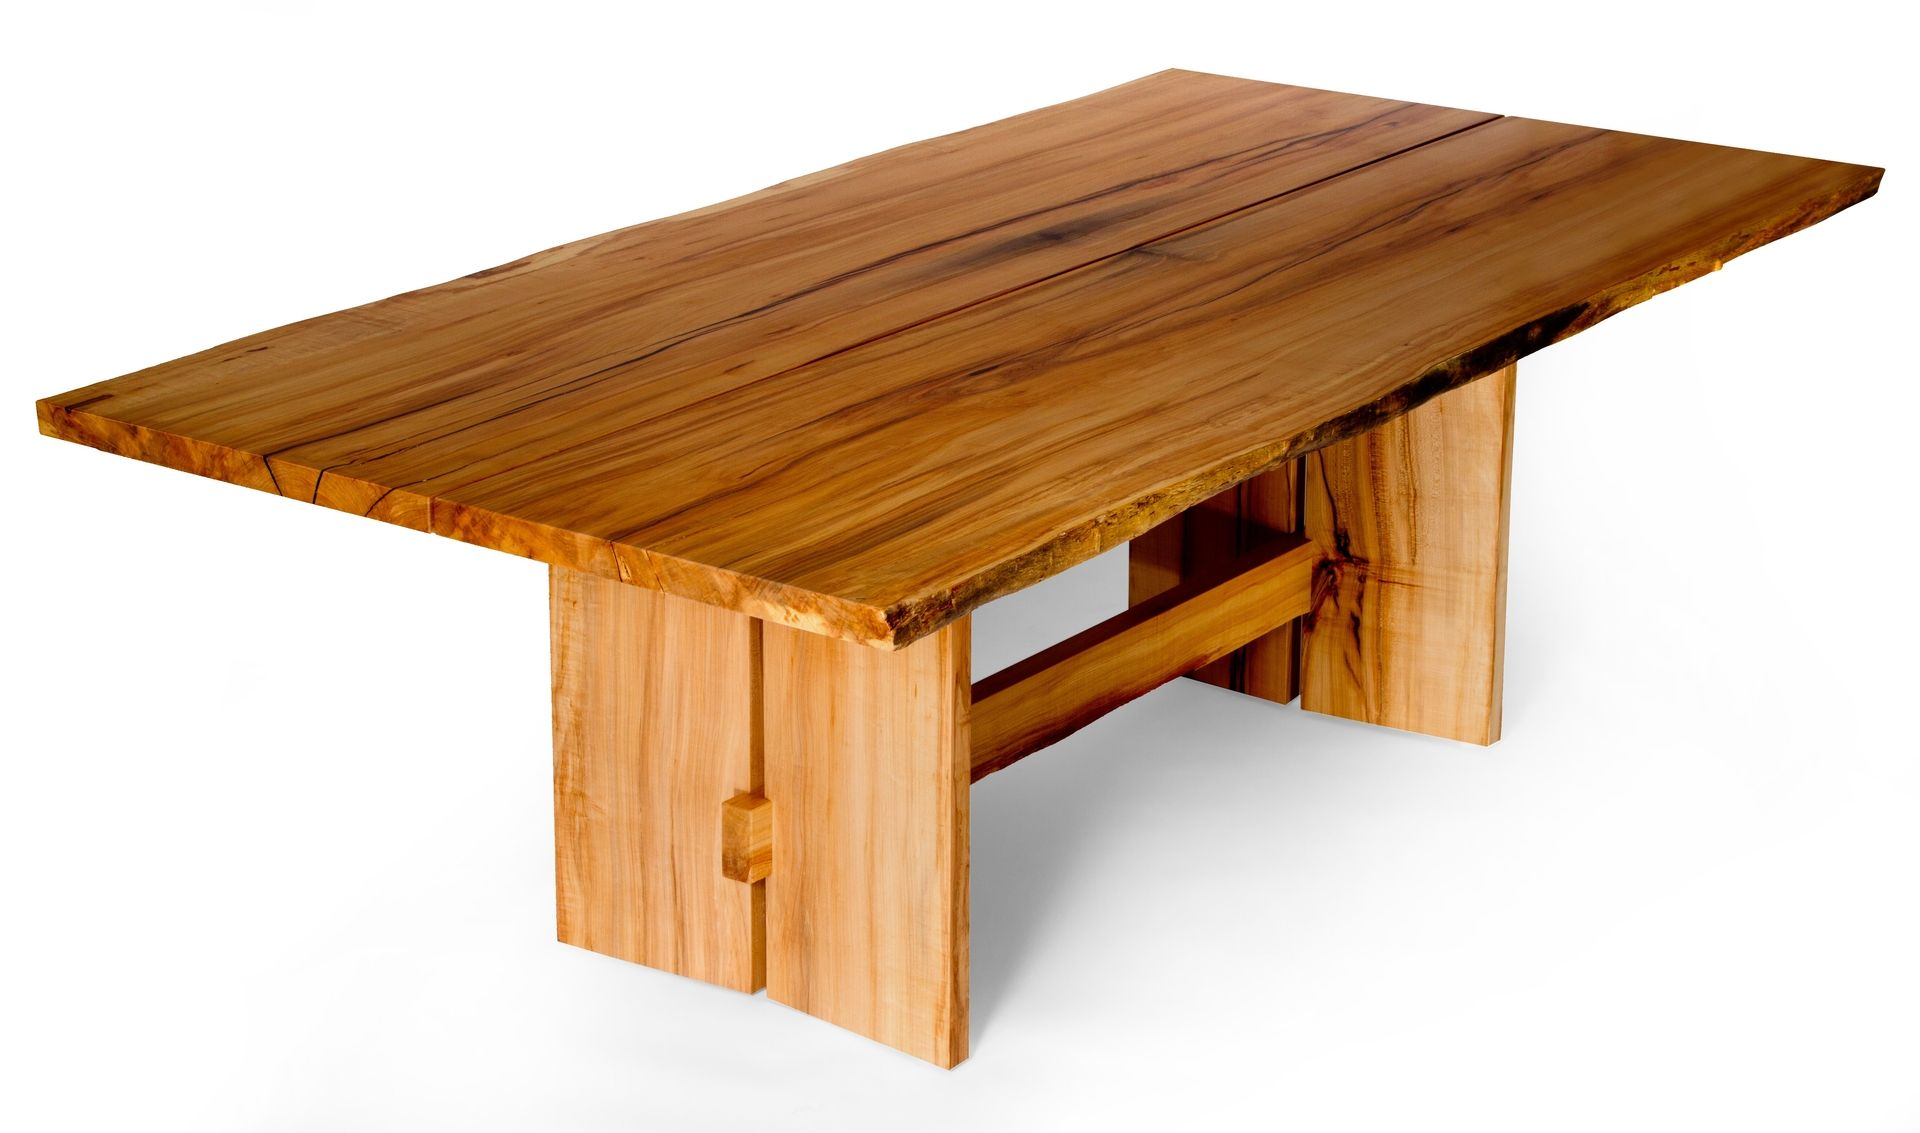 Hand Made Live Edge Slab Maple Dining Table By J Holtz